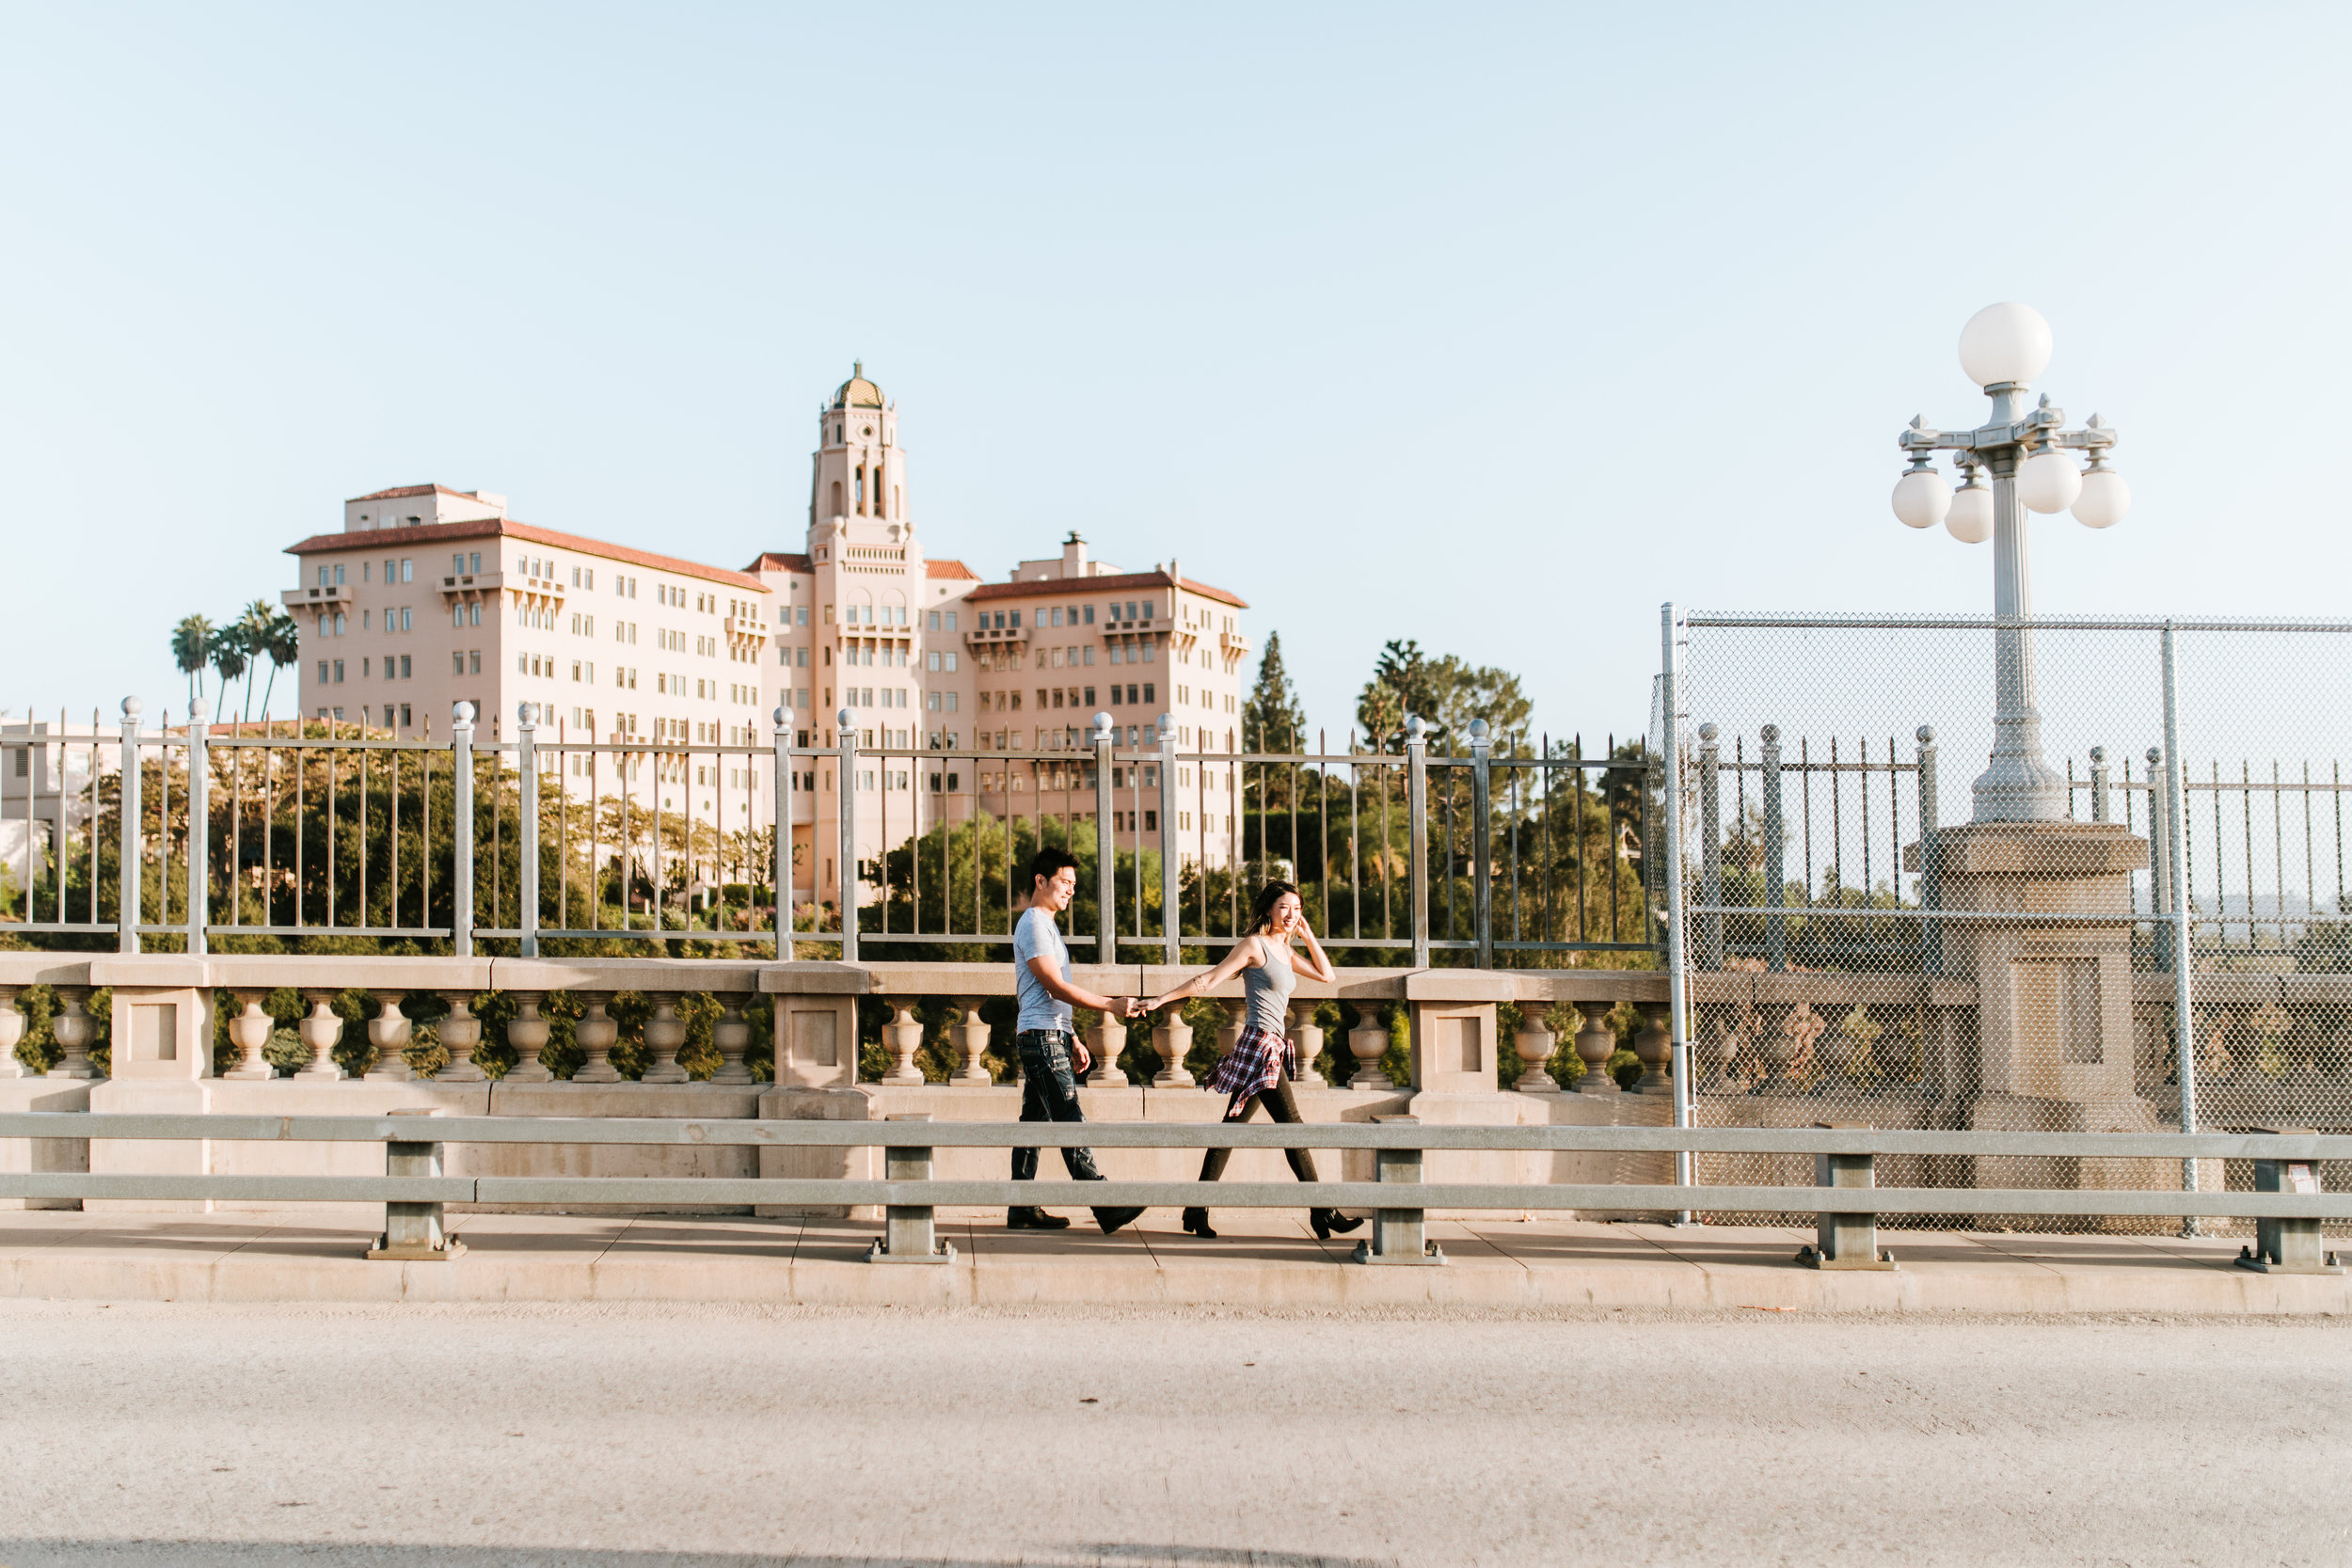 Sarah & Leonard - Colorado Street Bridge, Pasadena, CA - Engagement Session | CRM Media | www.crm-media.com